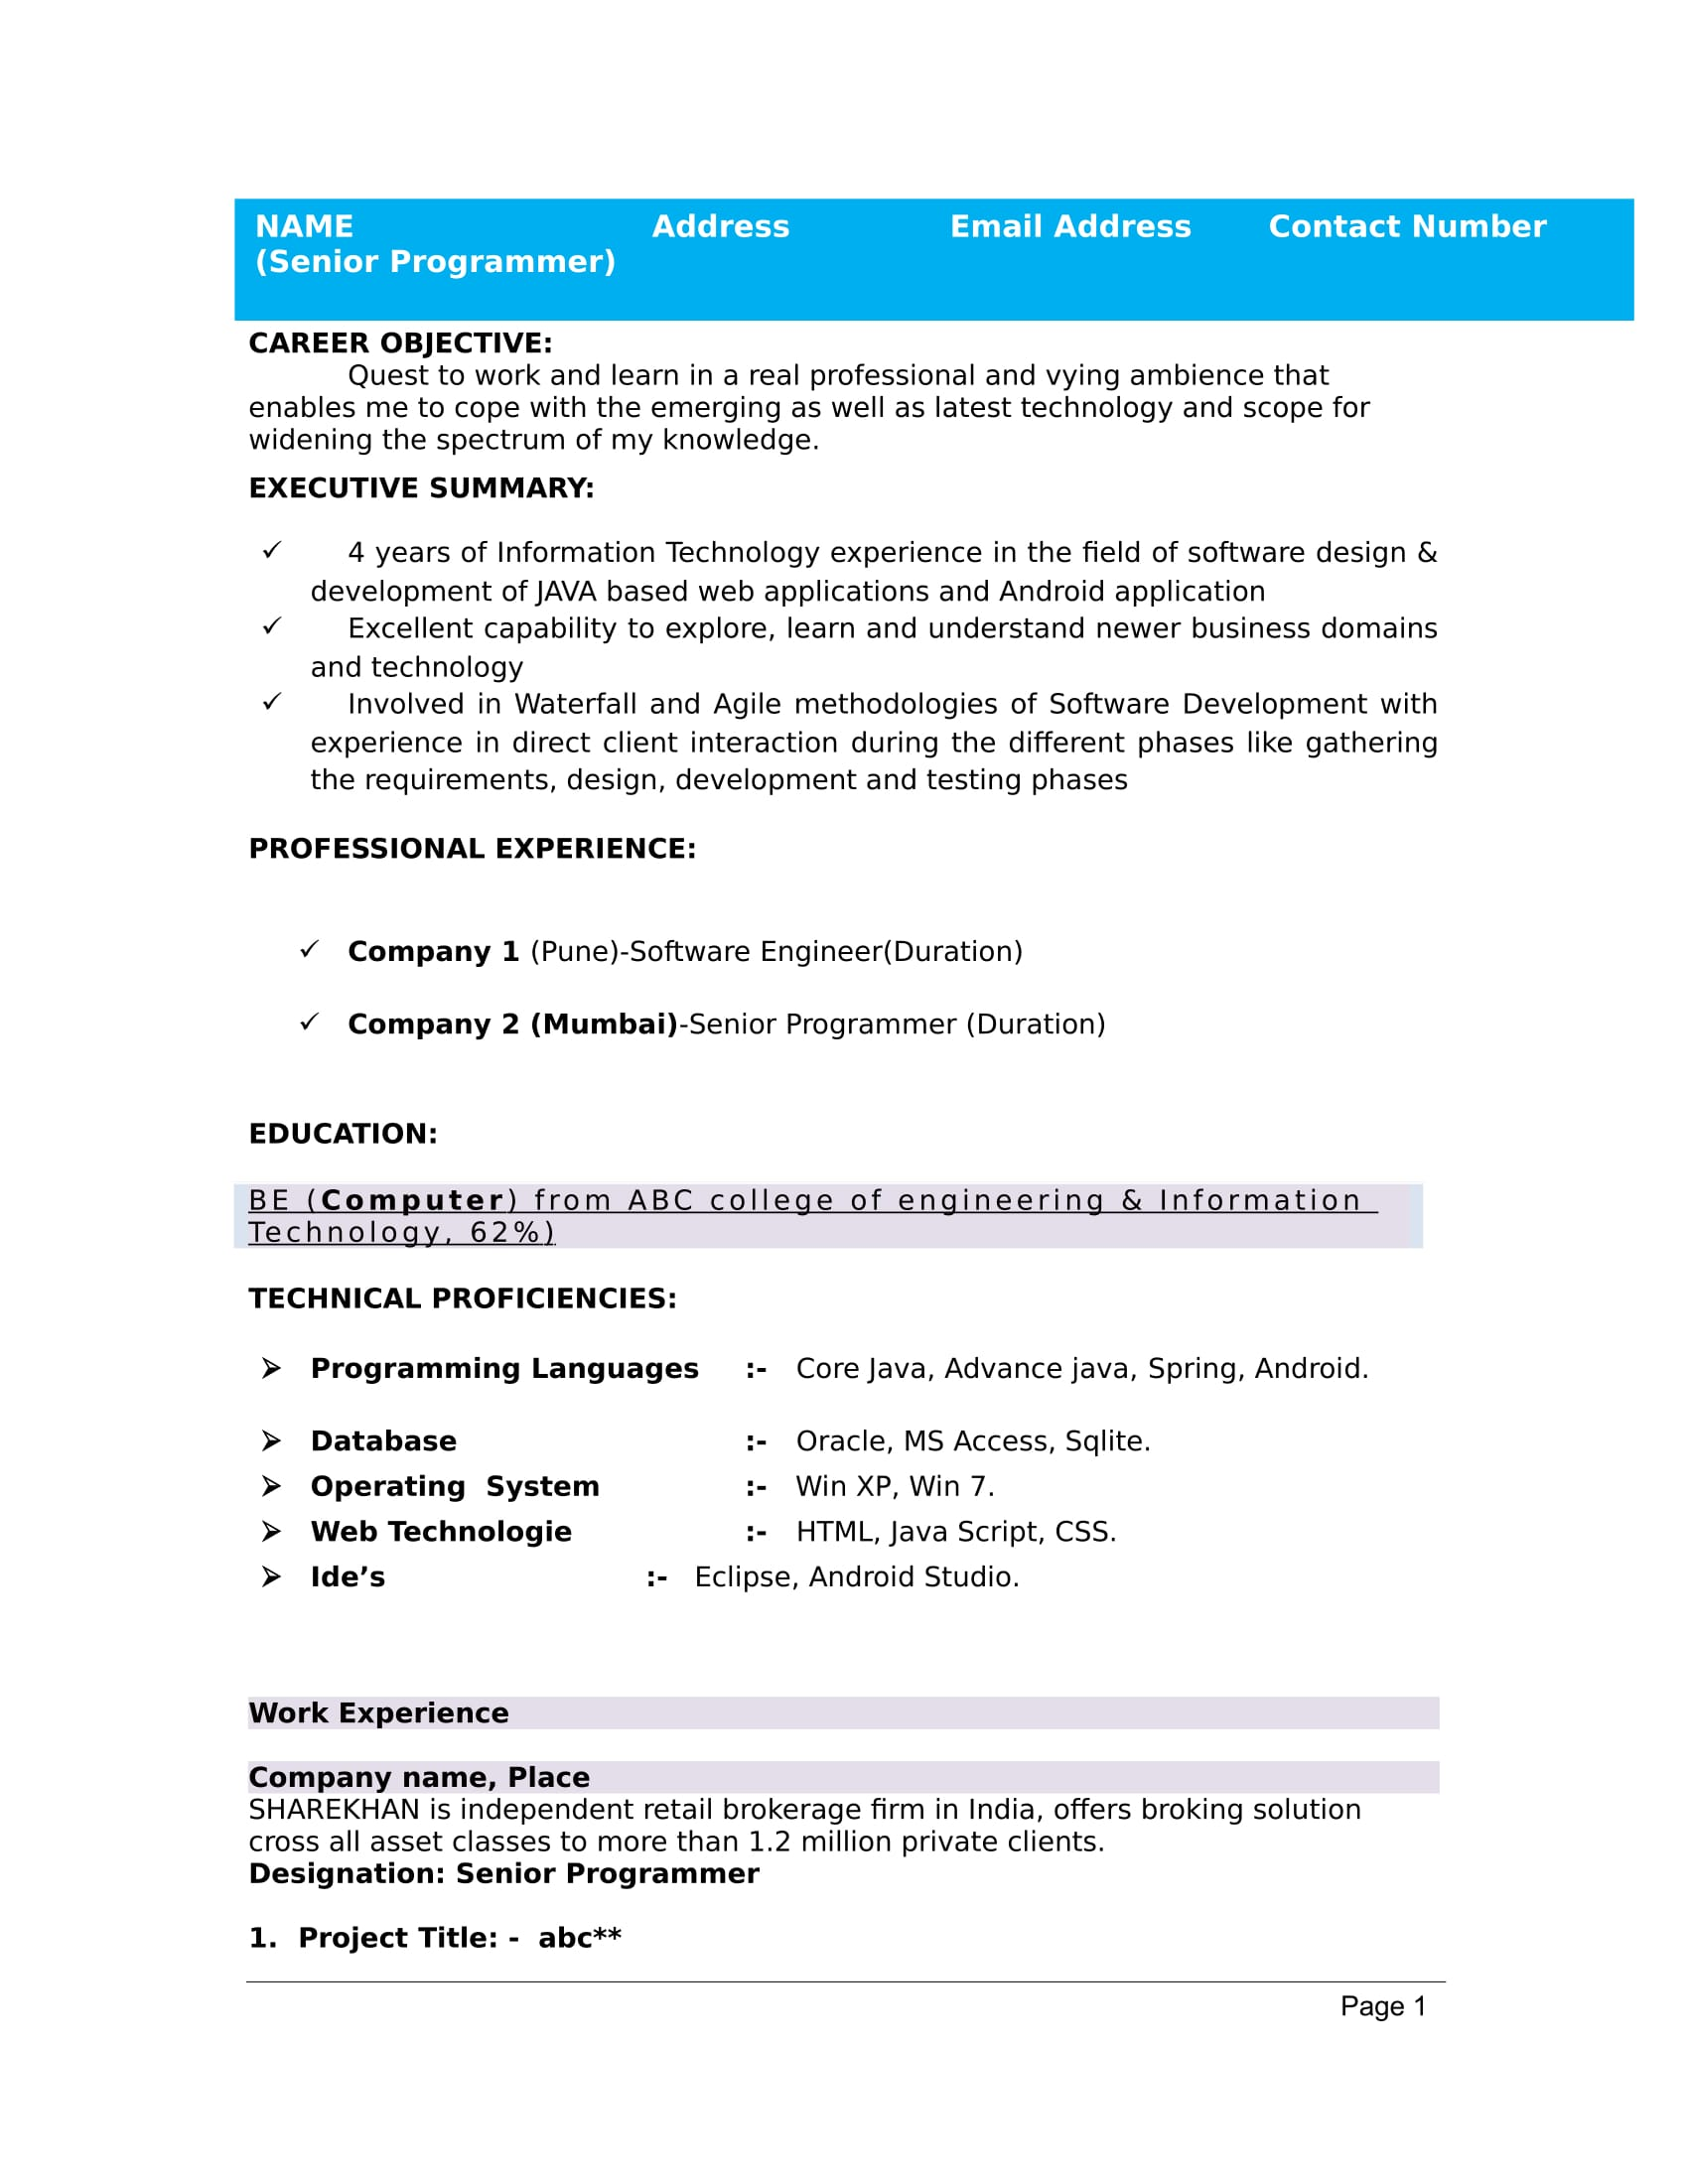 Test Manager Resume Sample India 32 43 Resume Templates For Freshers Download Free Word Format